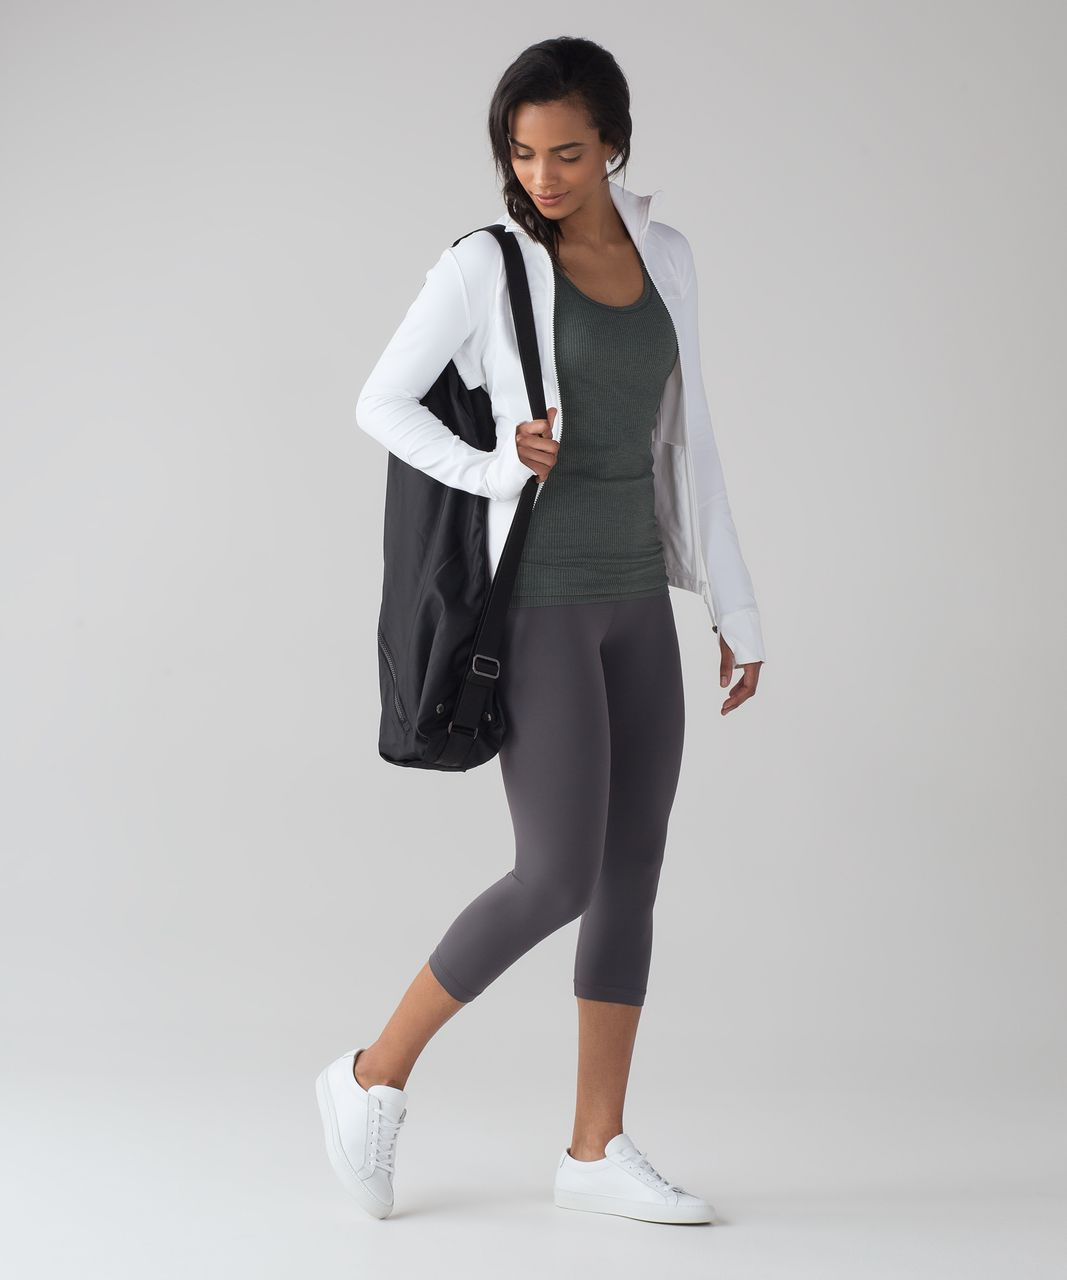 Lululemon Ebb To Street Tank (Light Support For B/C Cup) - Dark Forest